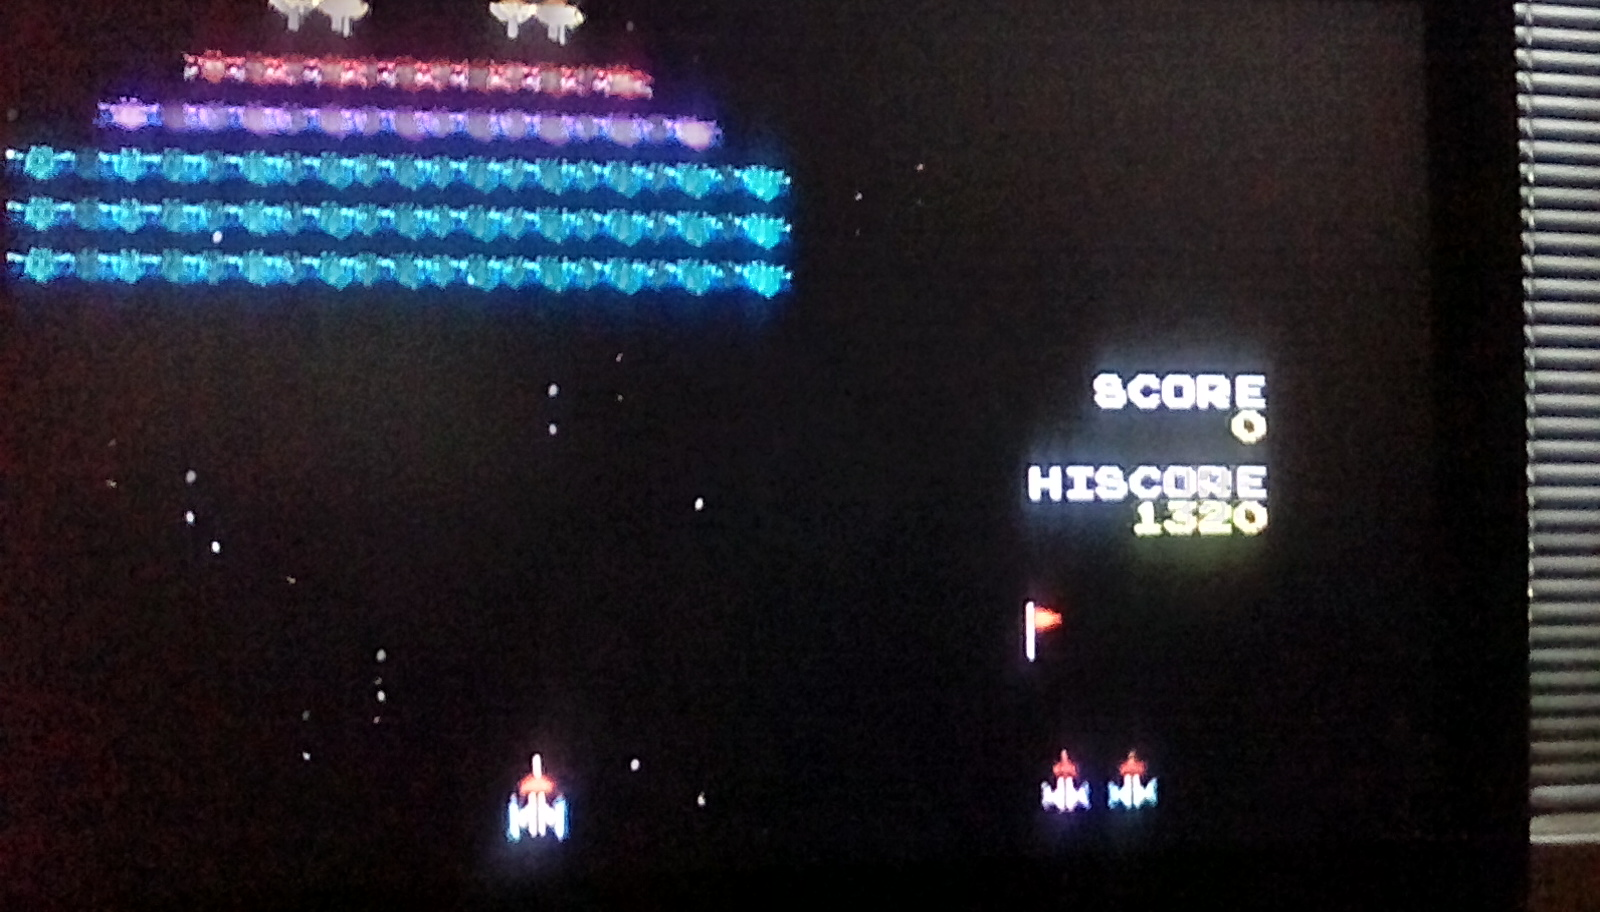 Galaxian 1,320 points